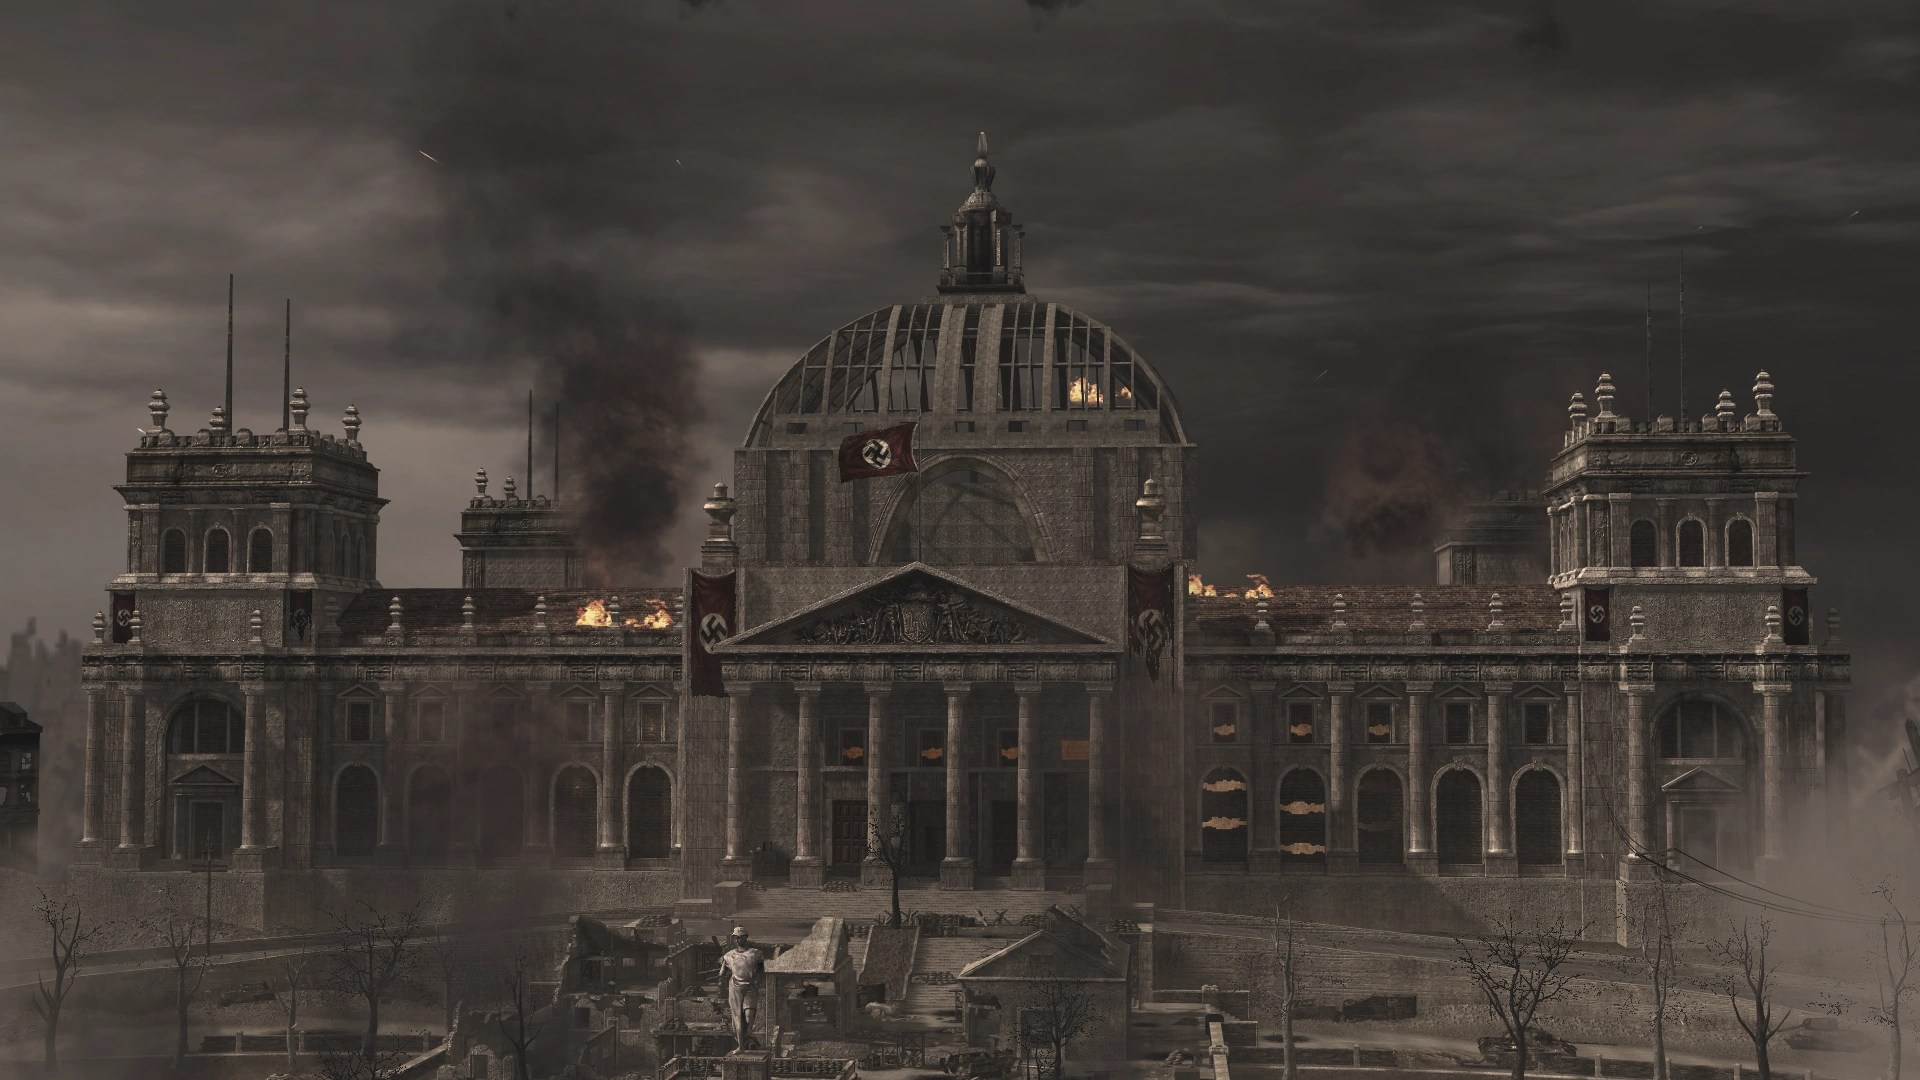 Call Of Duty Black Ops 3 Wallpaper Reichstag The Call Of Duty Wiki Black Ops Ii Ghosts